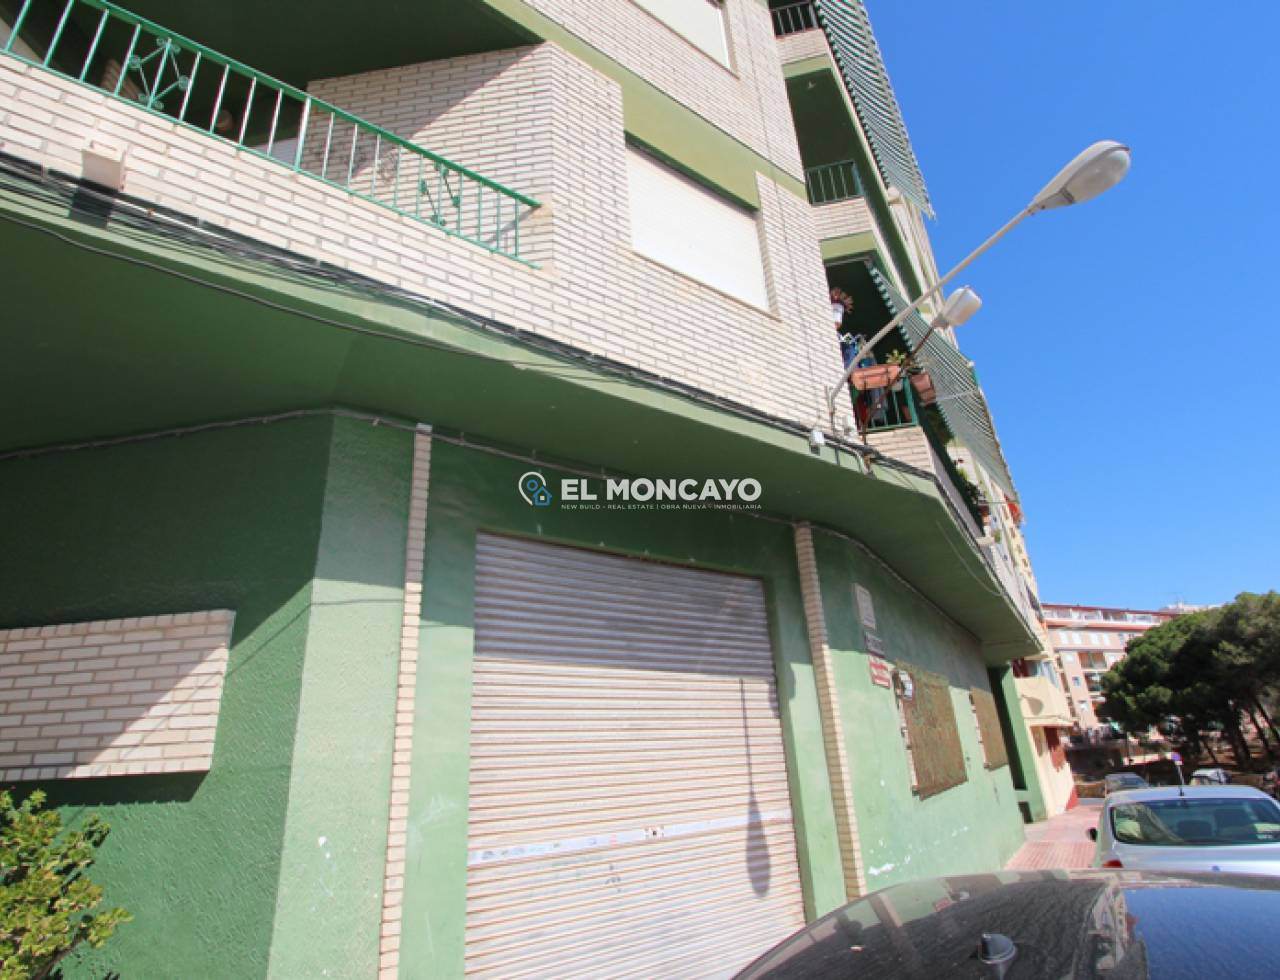 Reventa - Local comercial - Guardamar del Segura - Centro